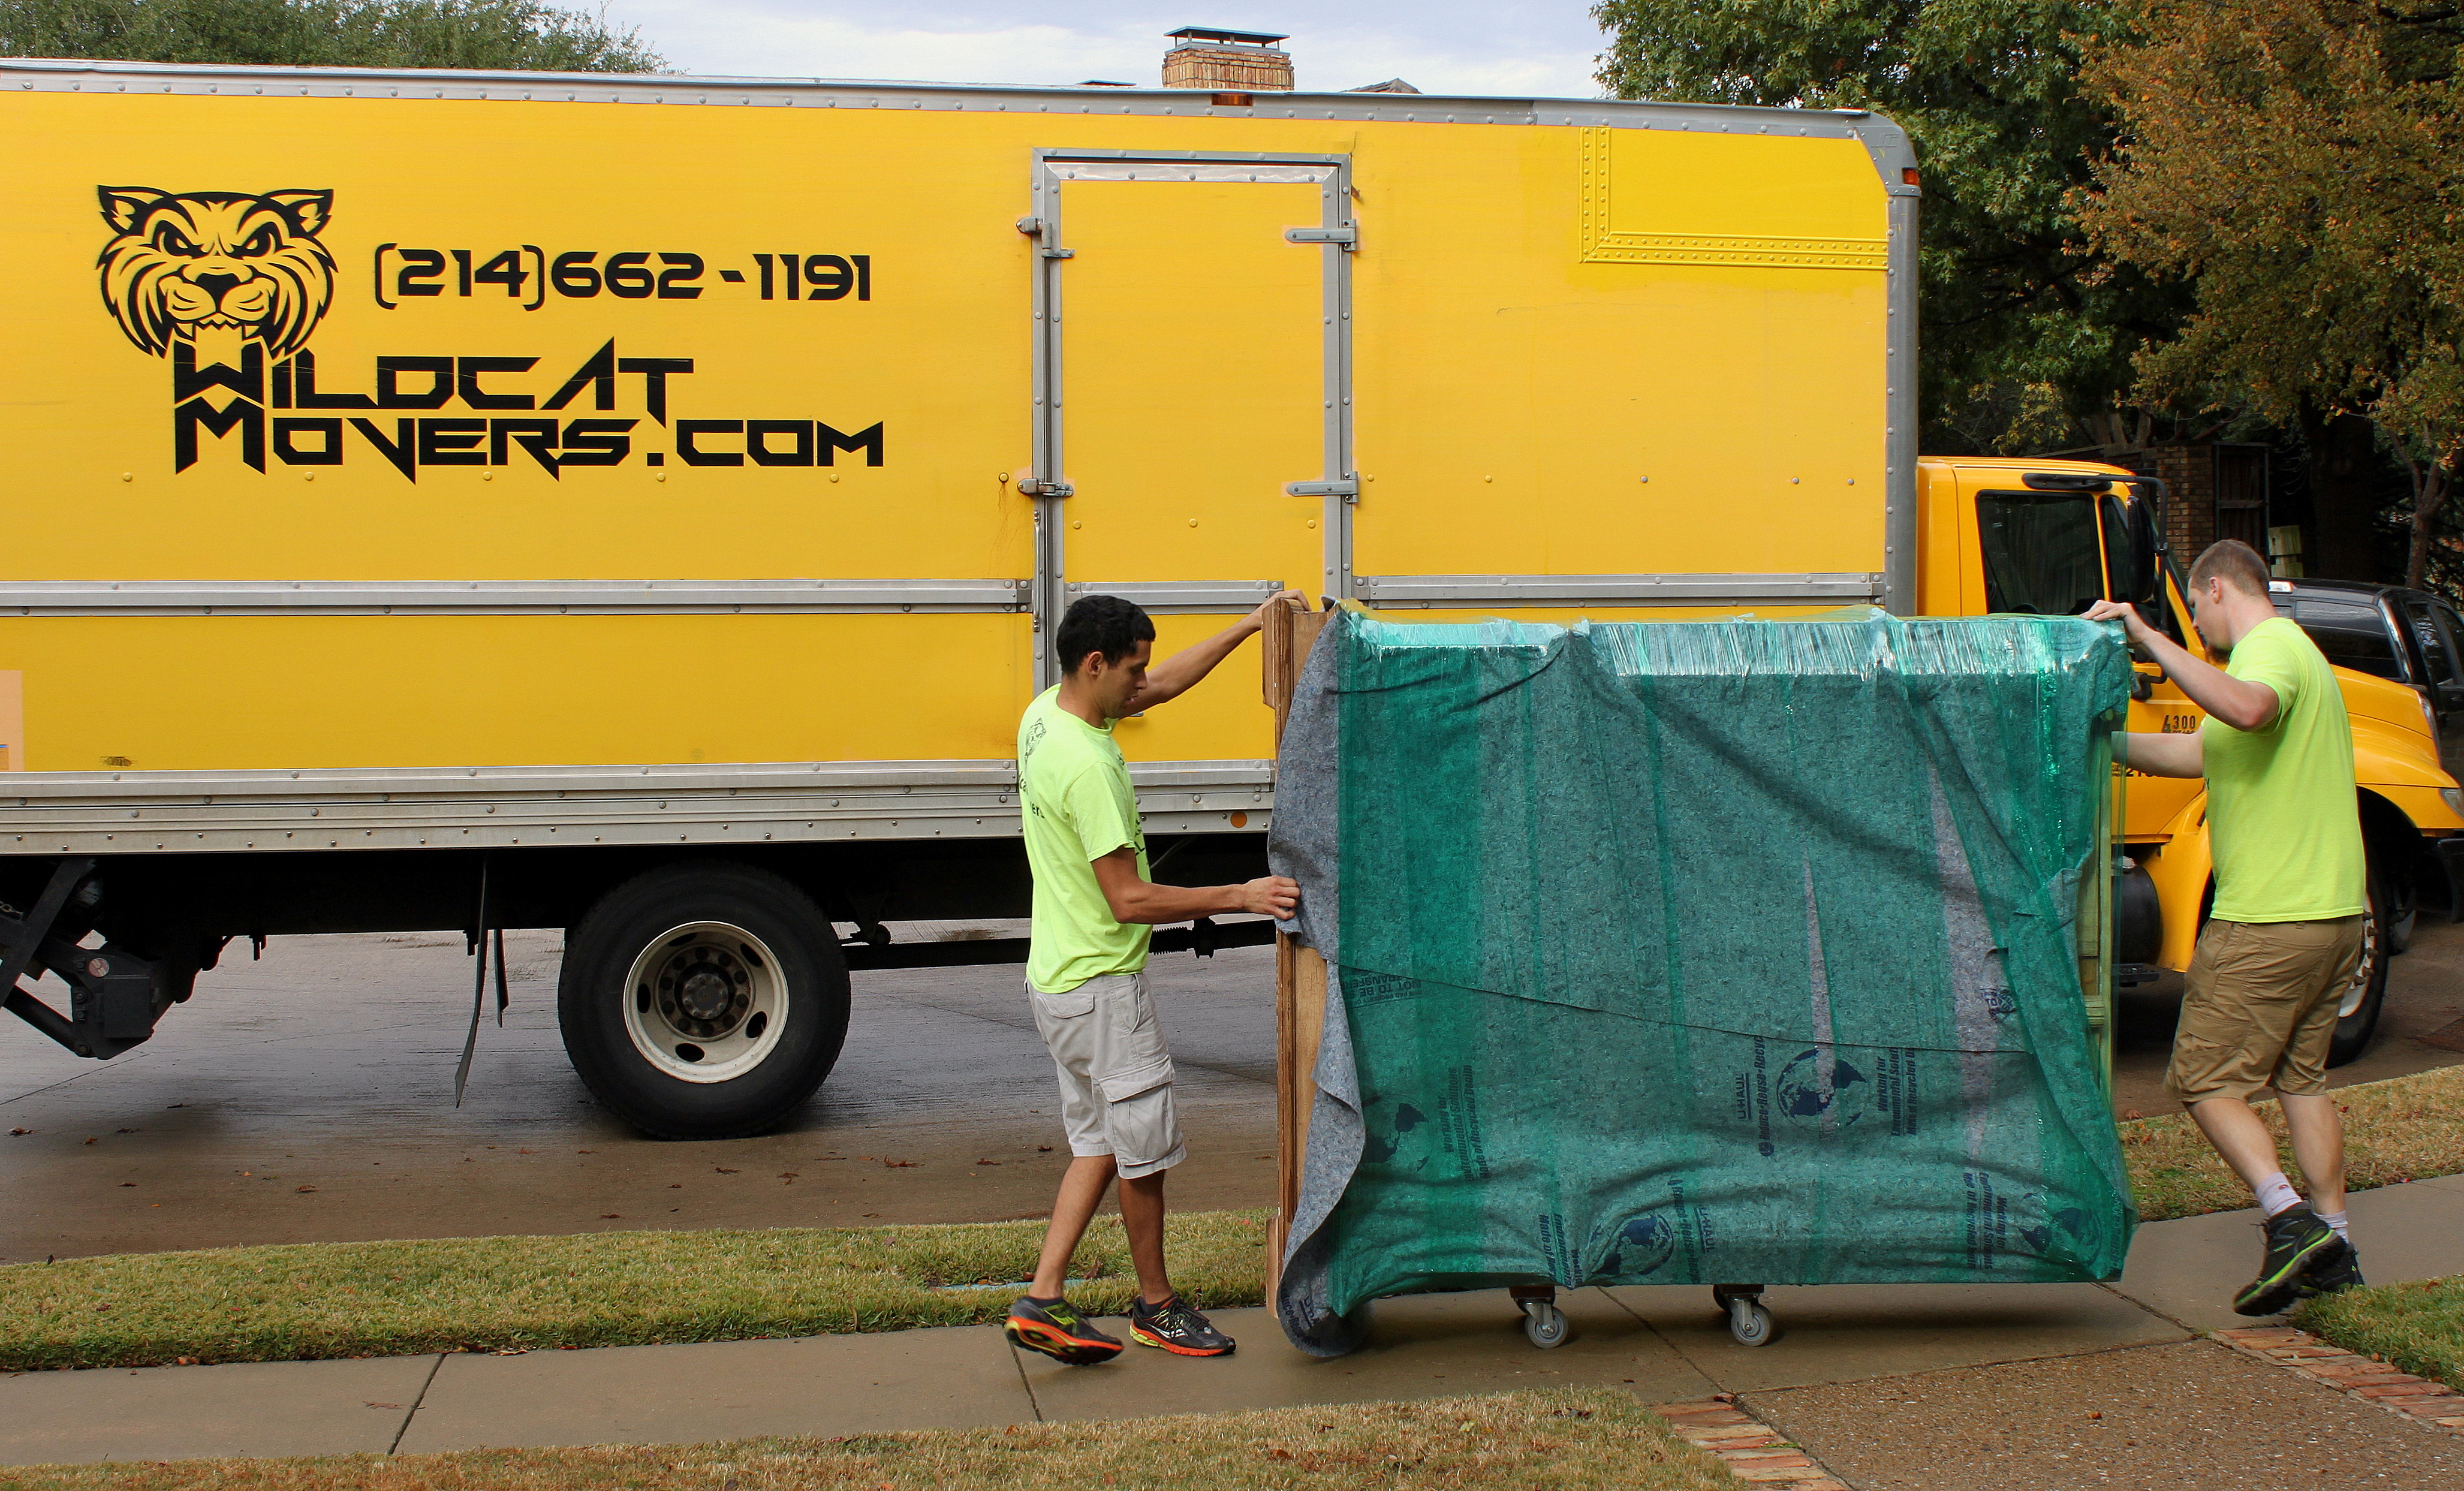 Wildcat Movers Pricing Moving Quote Rate Estimate Cost